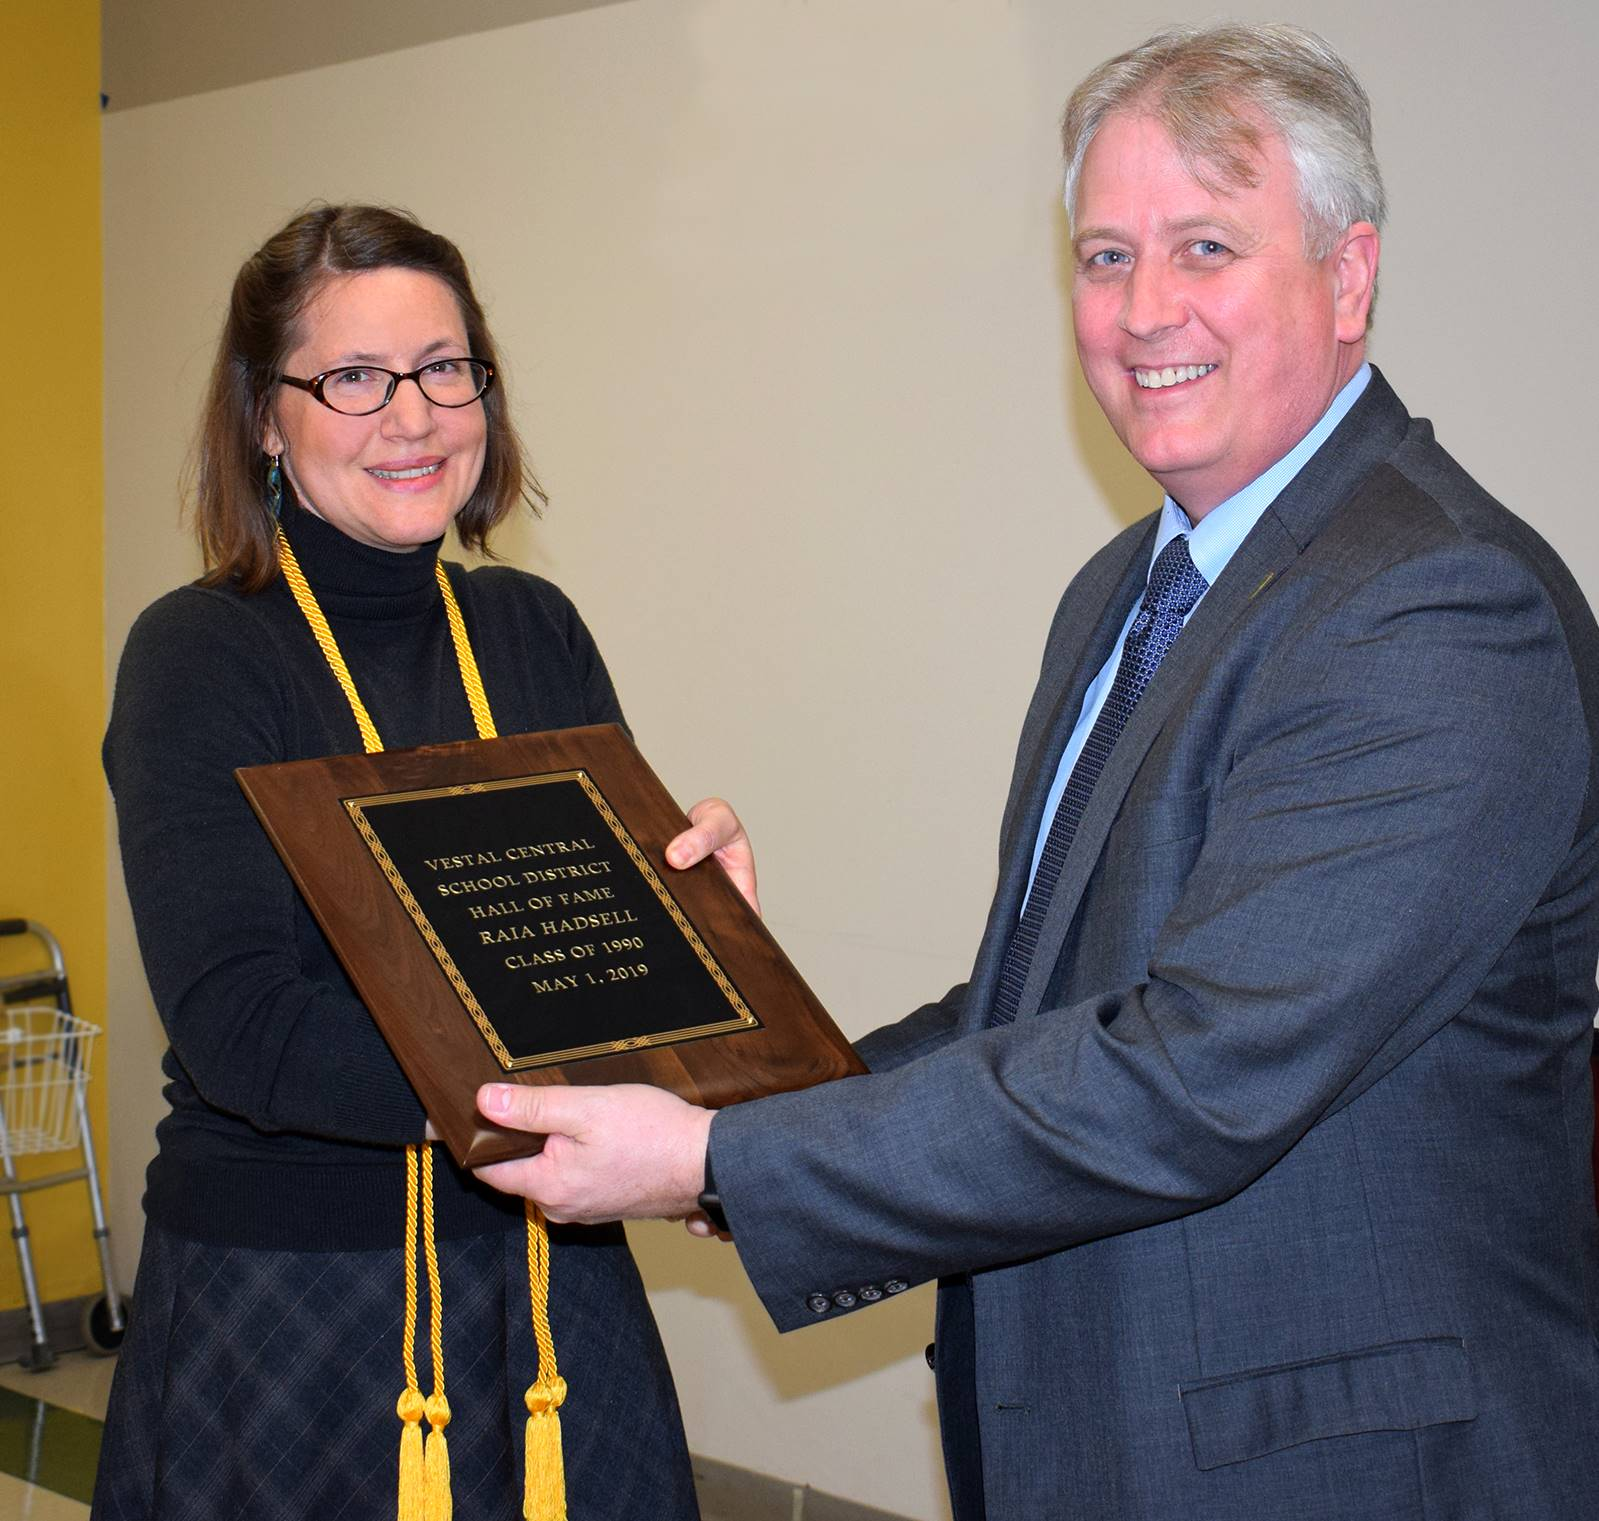 Dr. Raia Hadsell receives her Hall of Fame plaque from Superintendent Ahearn.